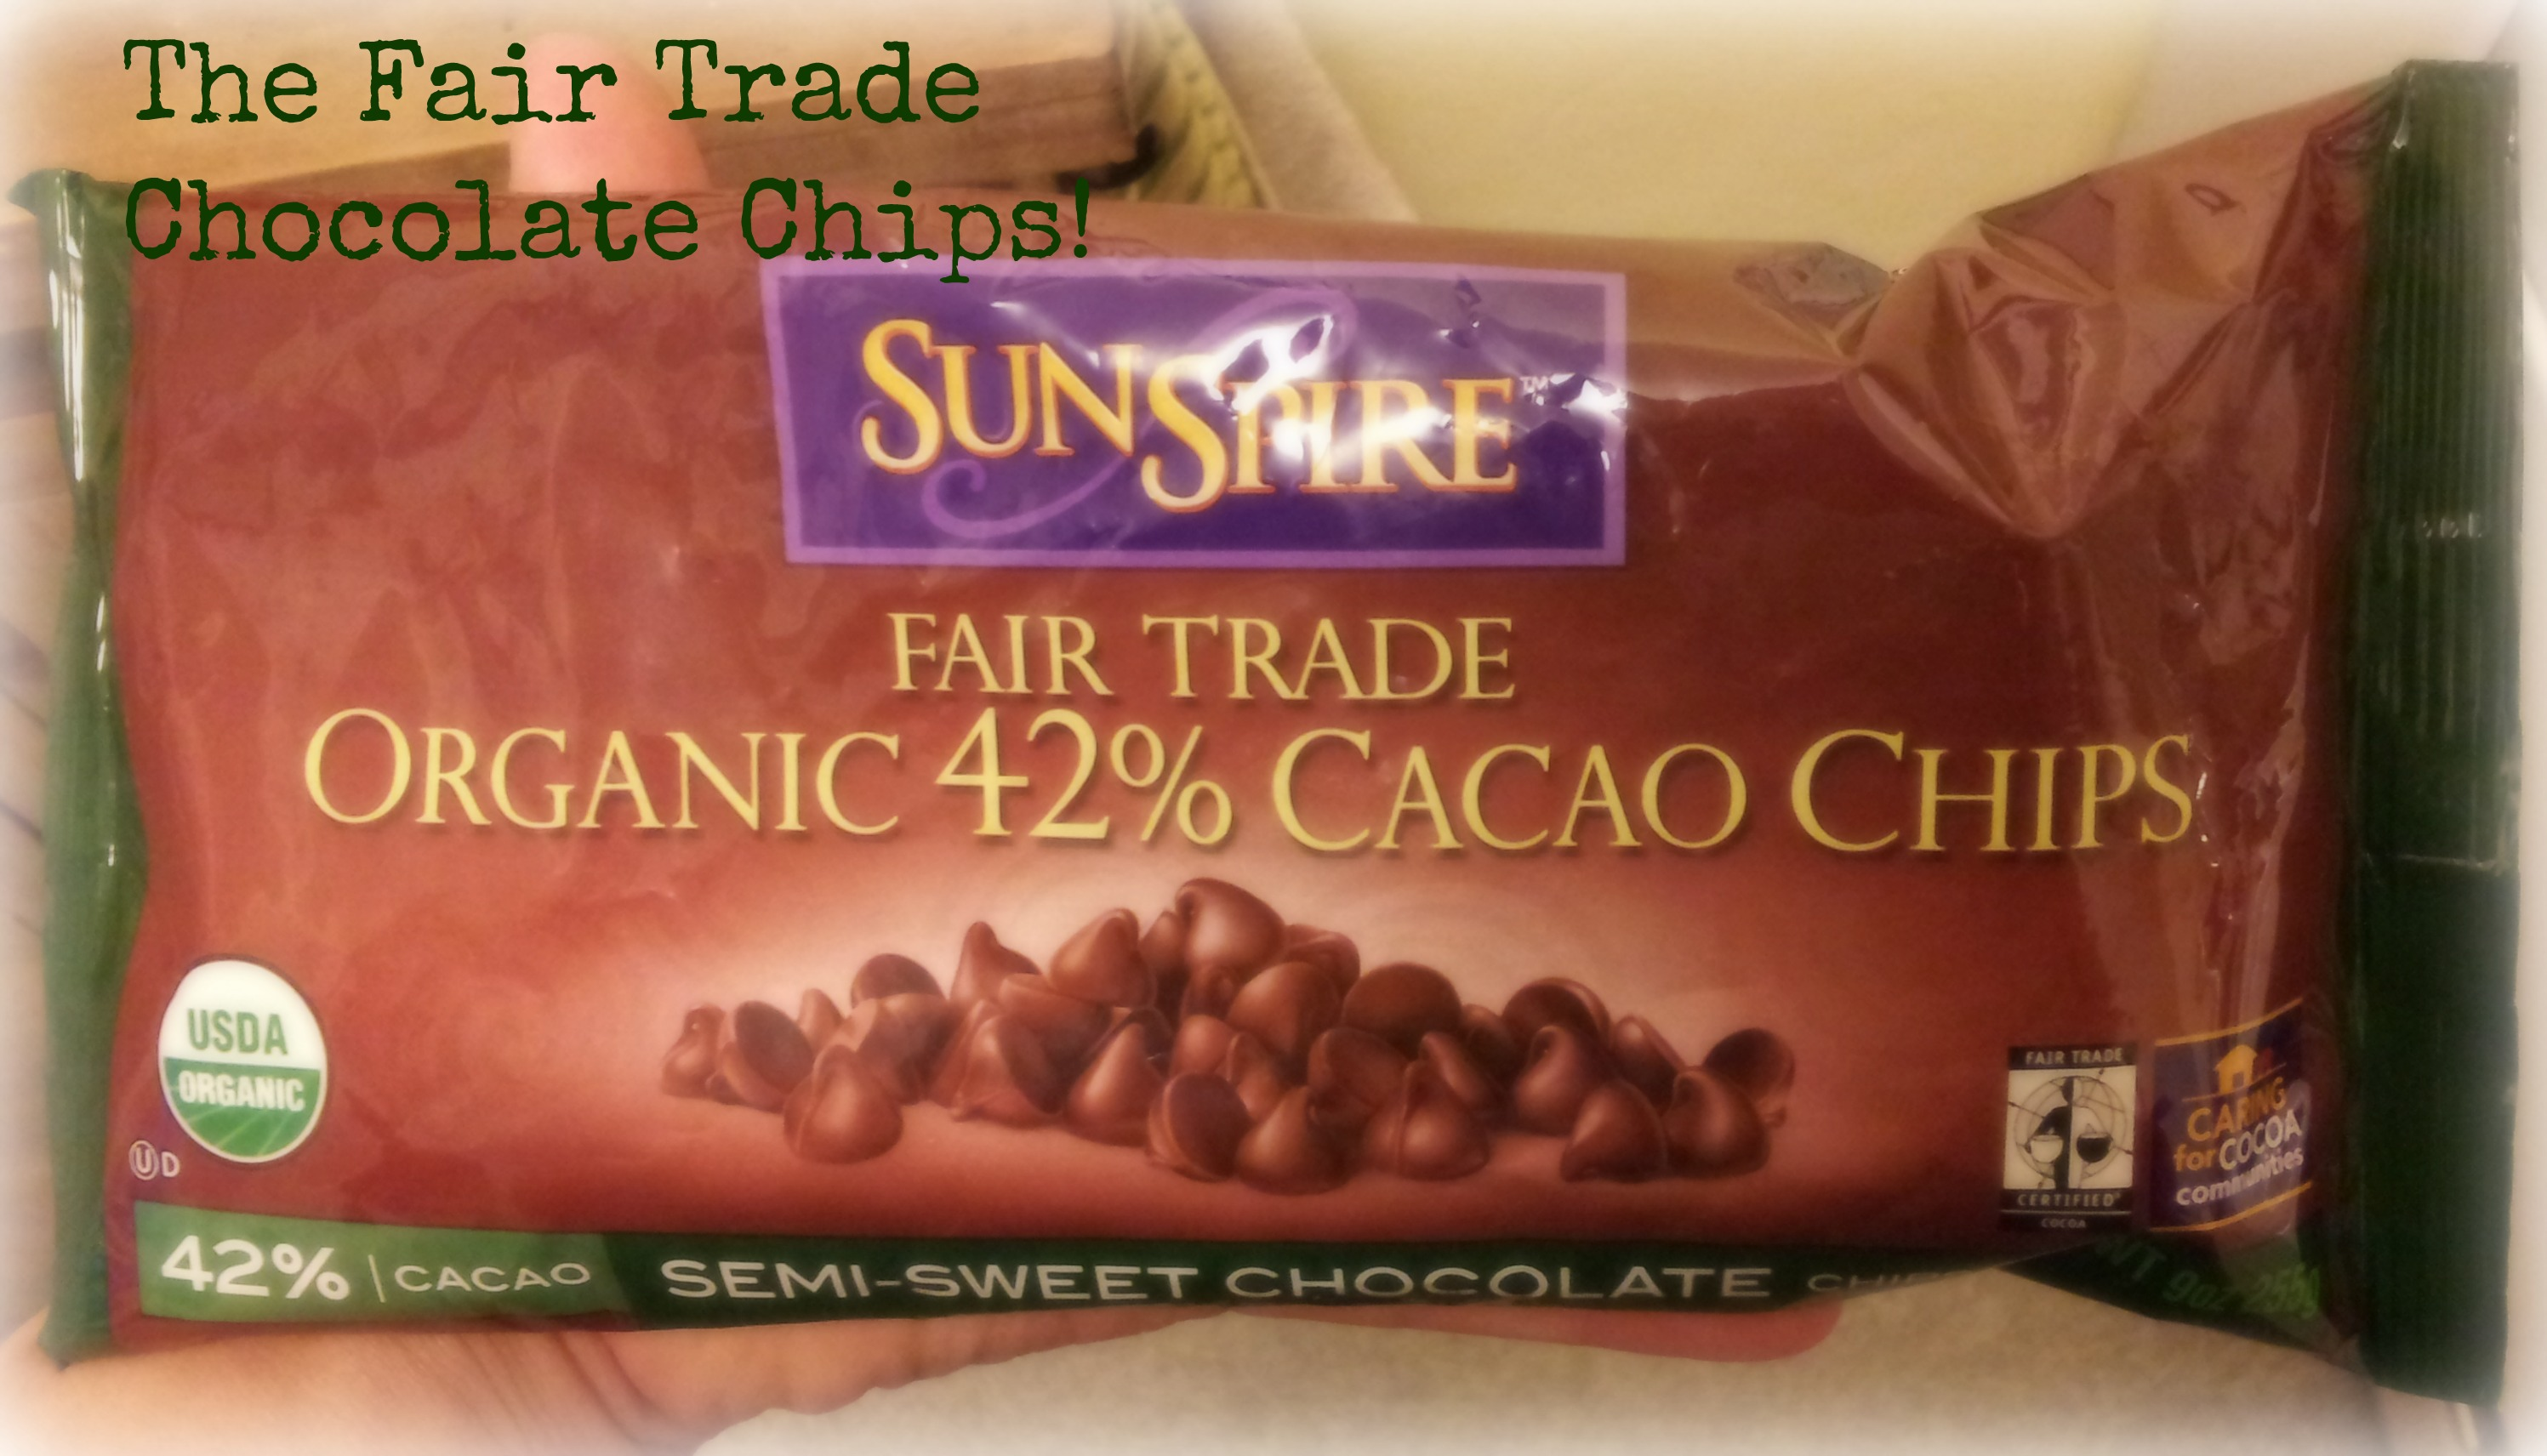 Fair Trade Chocolate Chips - Fuzzbeed HD Gallery